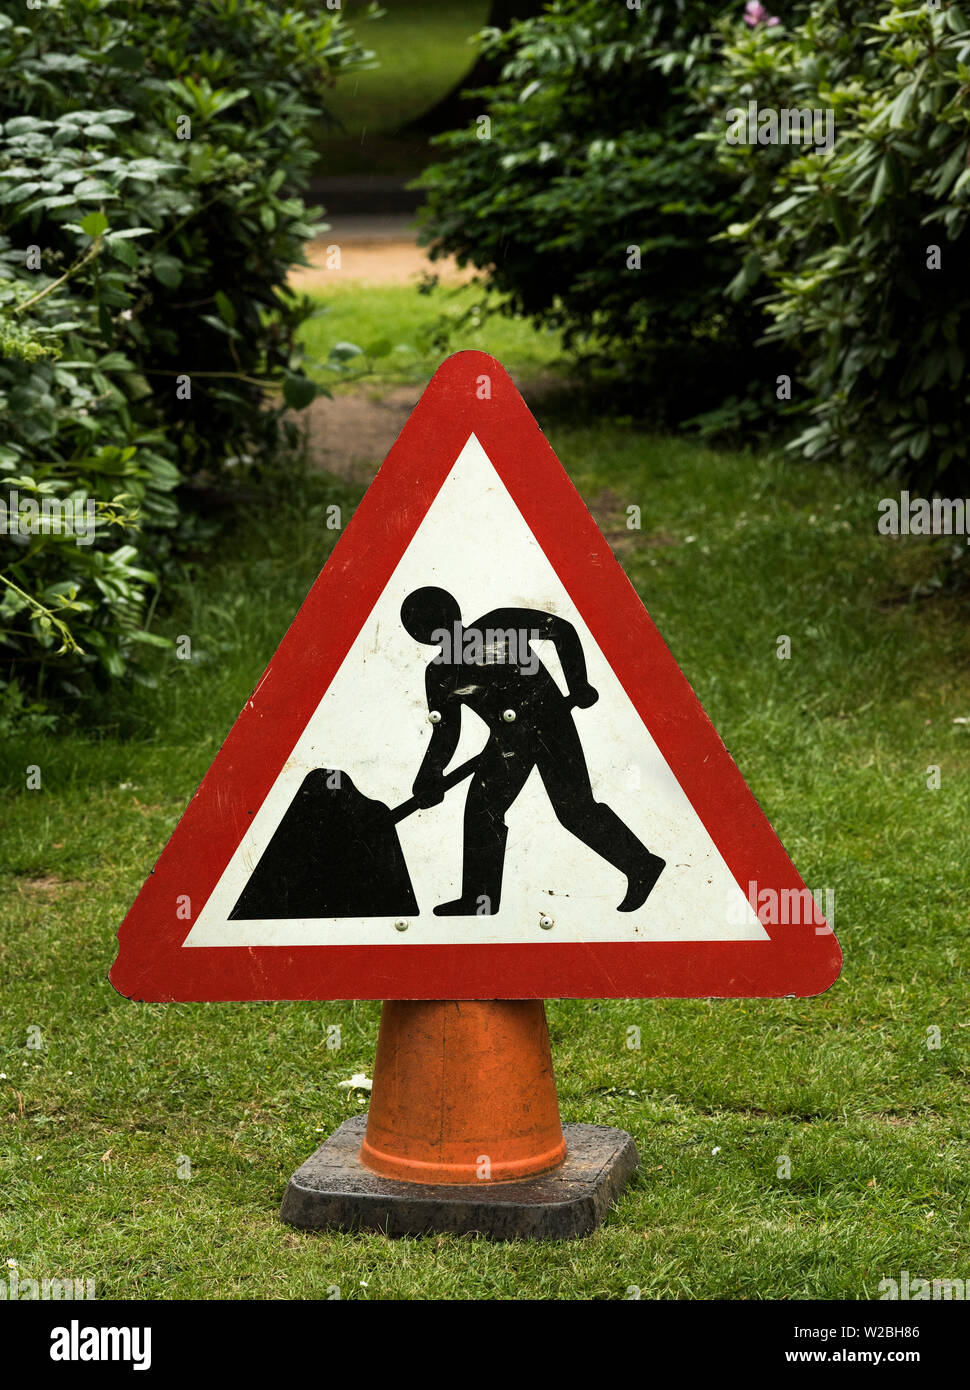 A sign warns of the hazardous area around tree cutting. - Stock Image